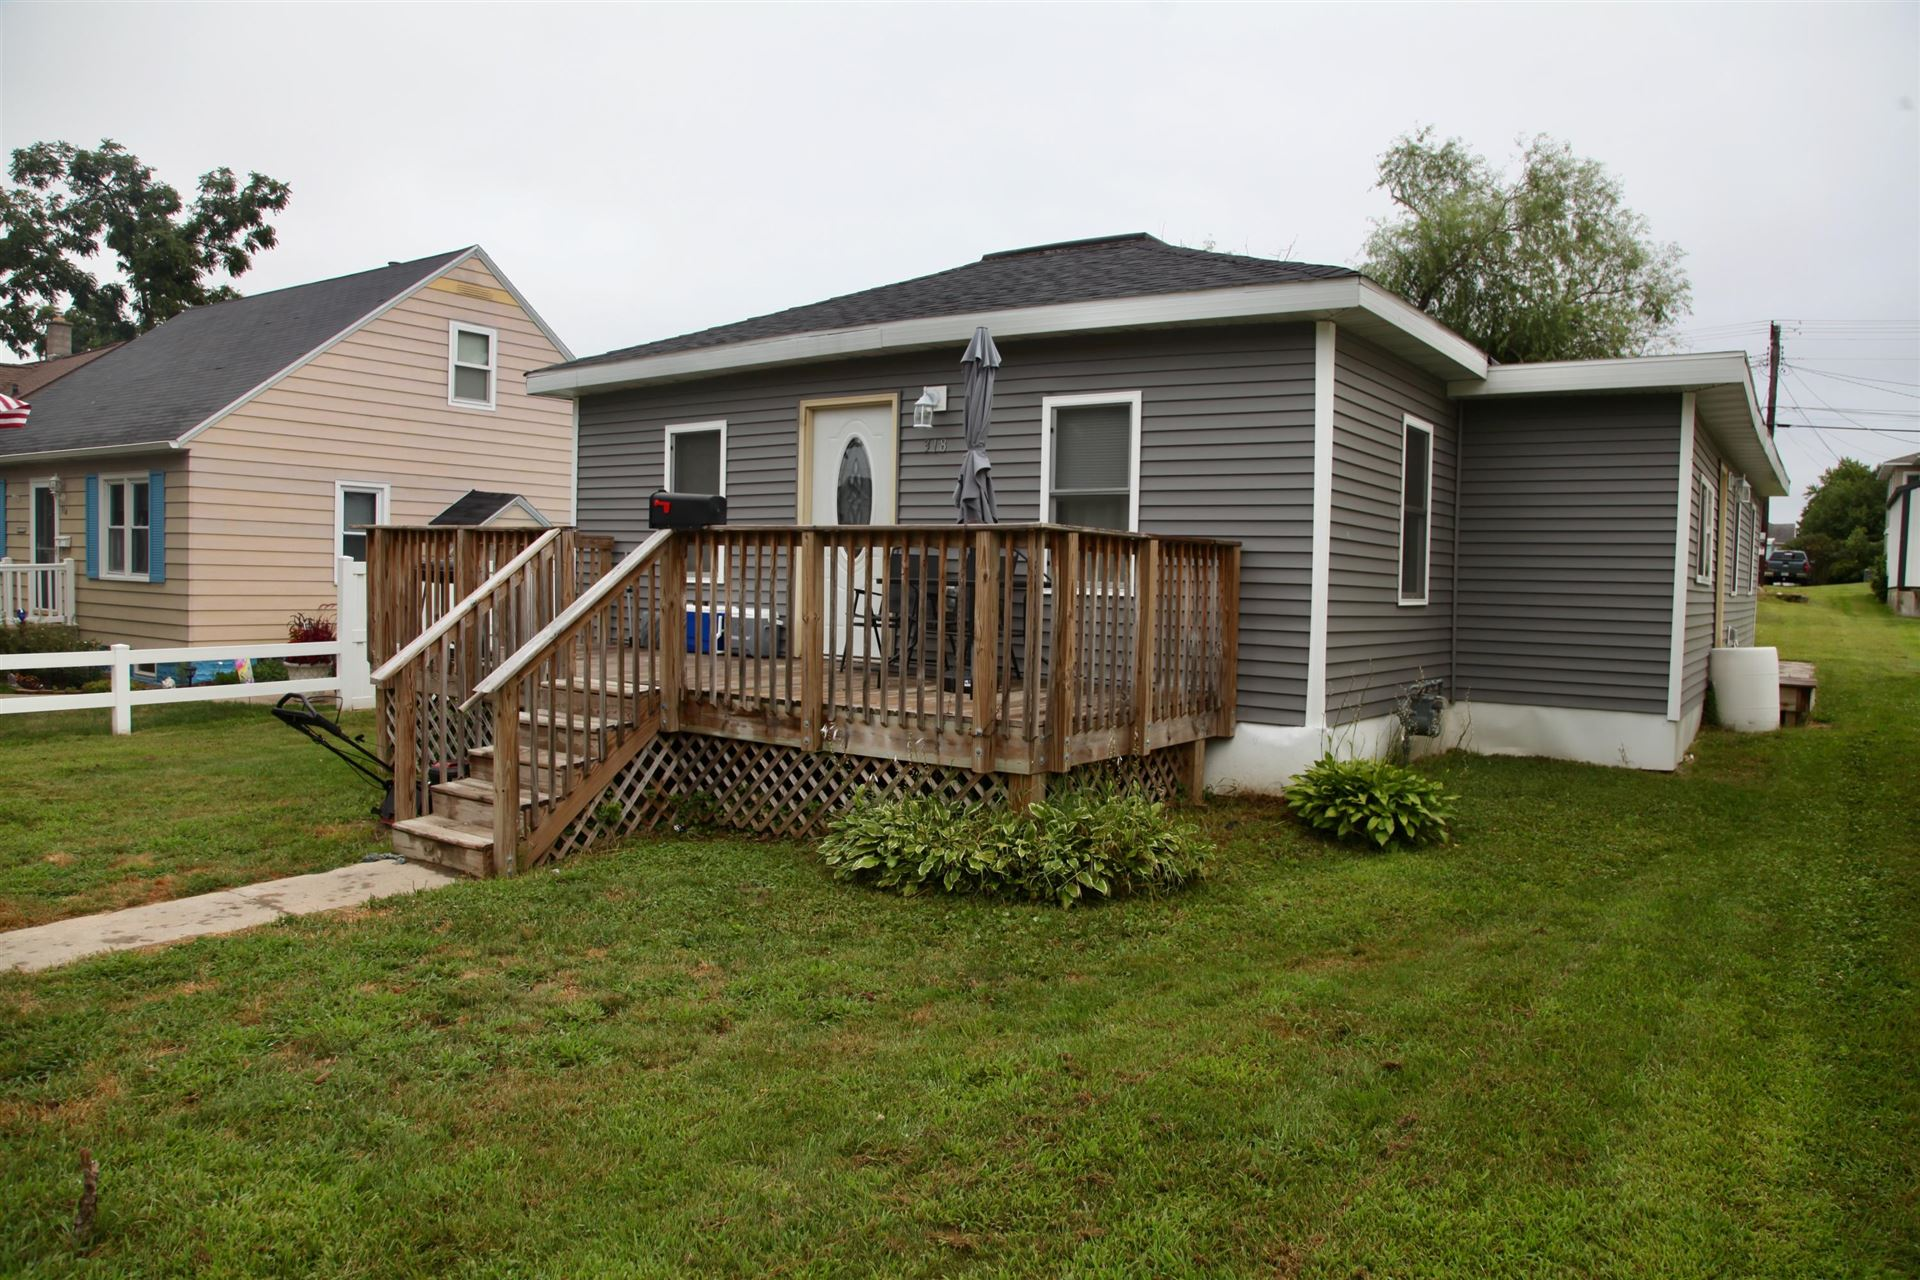 318 Cady Ave, Tomah, WI 54660 - MLS#: 1699366